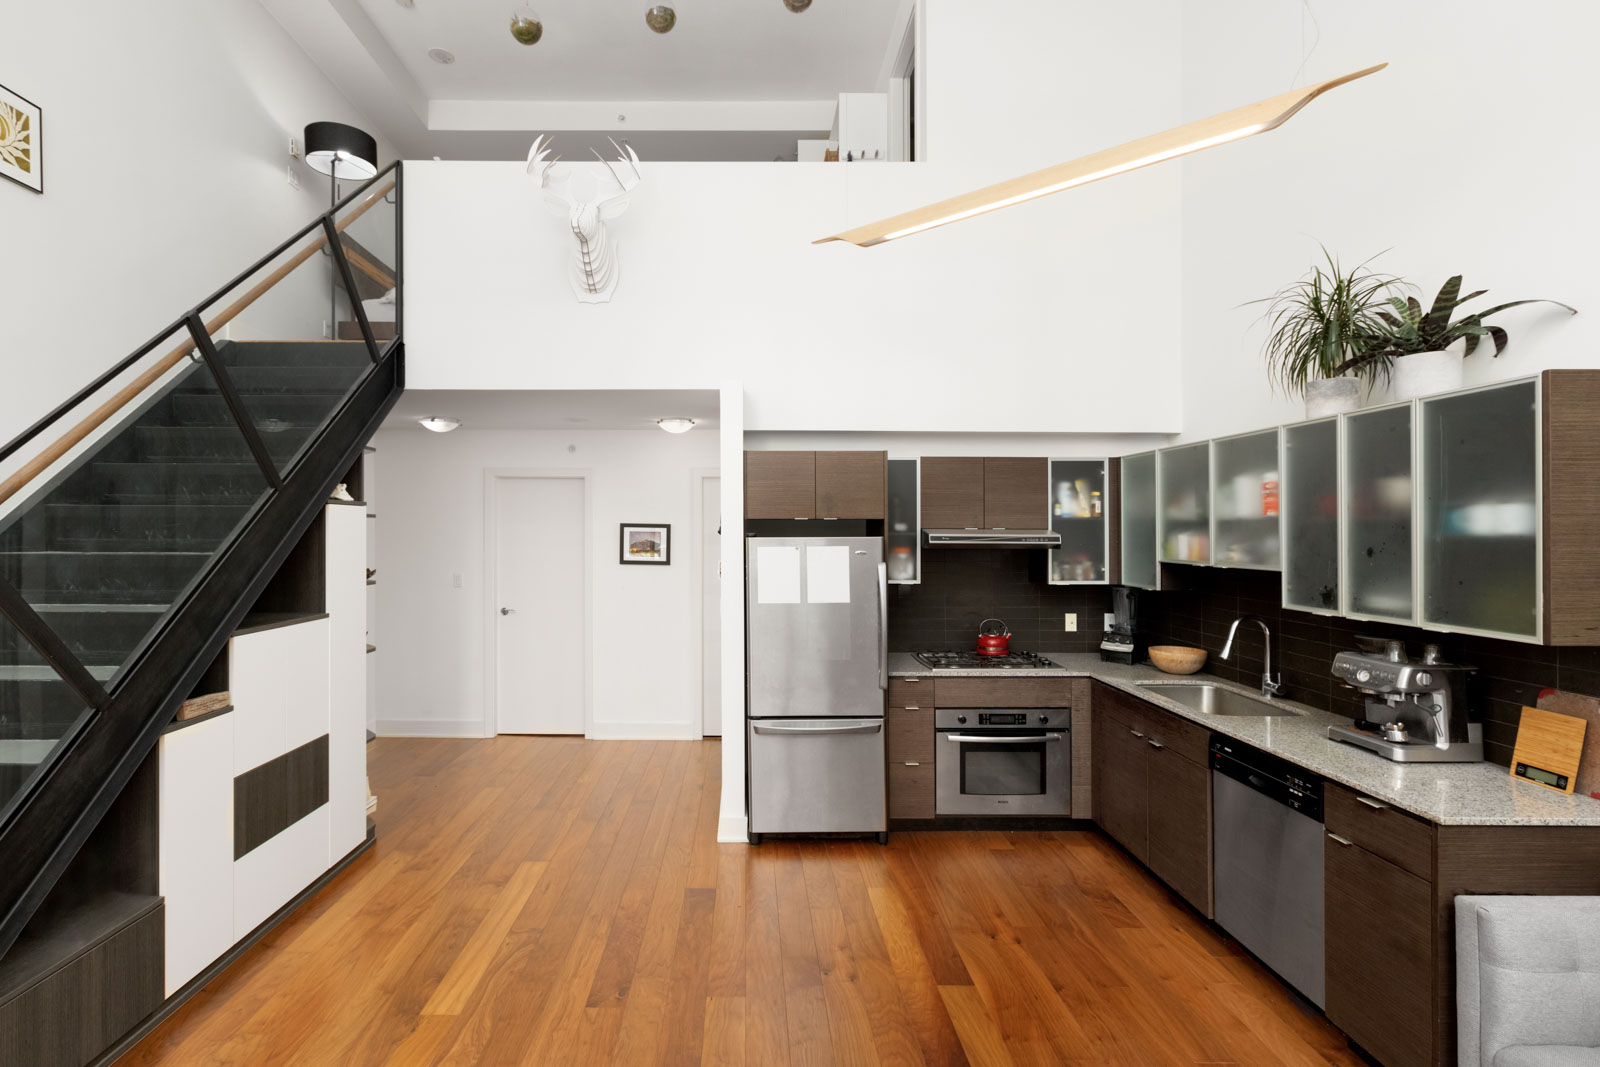 view of two levels in loft apartment with hardwood floors ktichen on right and partial view of stairs on left and white walls above